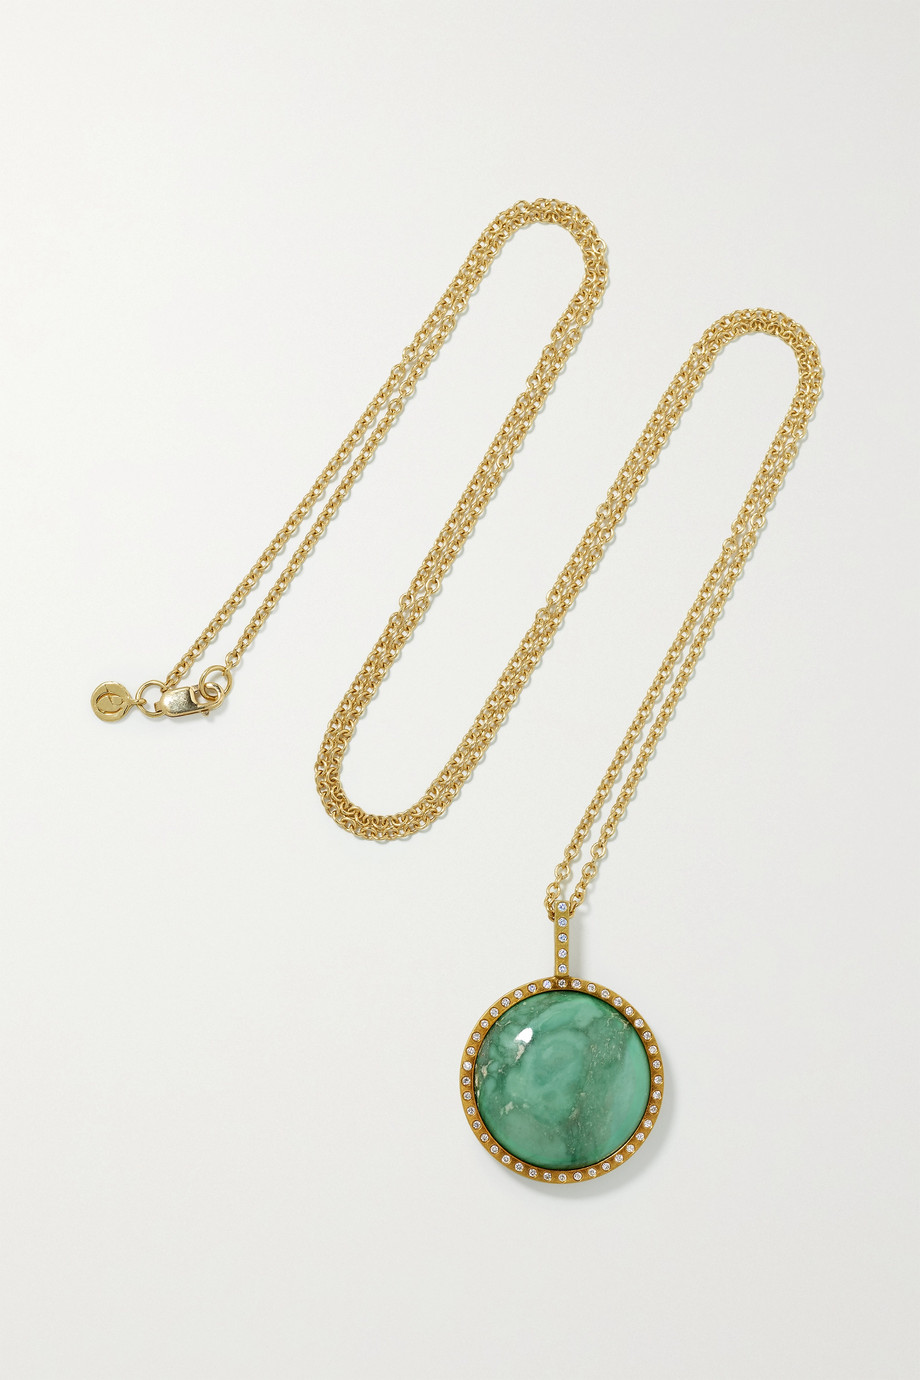 Octavia Elizabeth + NET SUSTAIN 18-karat recycled gold, variscite and diamond necklace